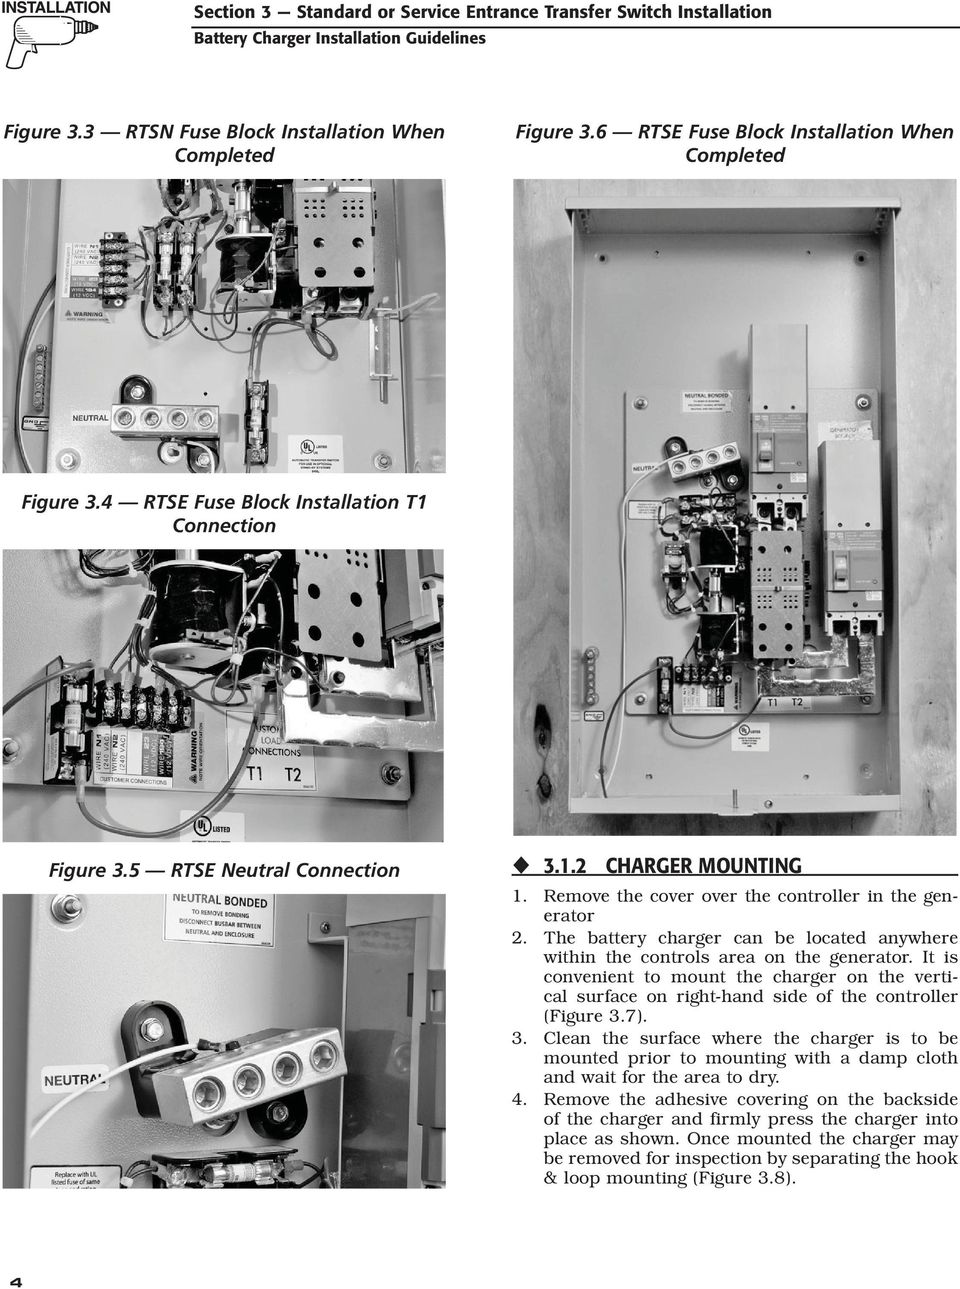 Air Cooled Generator Battery Charger Installation Guidelines Pdf Layout For 2008 Fuse Box The Can Be Located Anywhere Within Controls Area On It